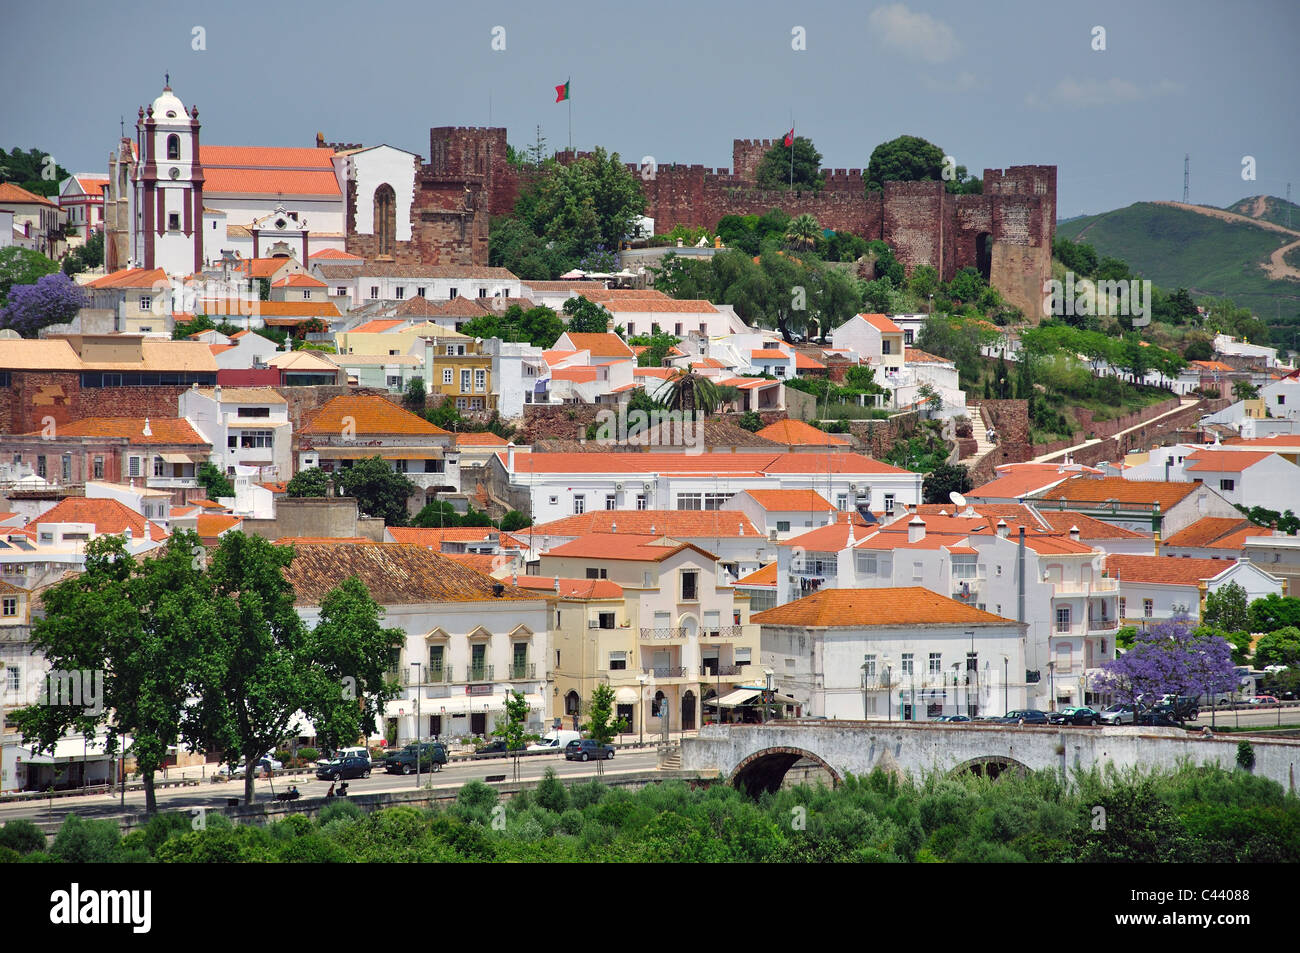 View of hillside town, Silves, Silves Municipality, Faro District, Algarve Region, Portugal - Stock Image